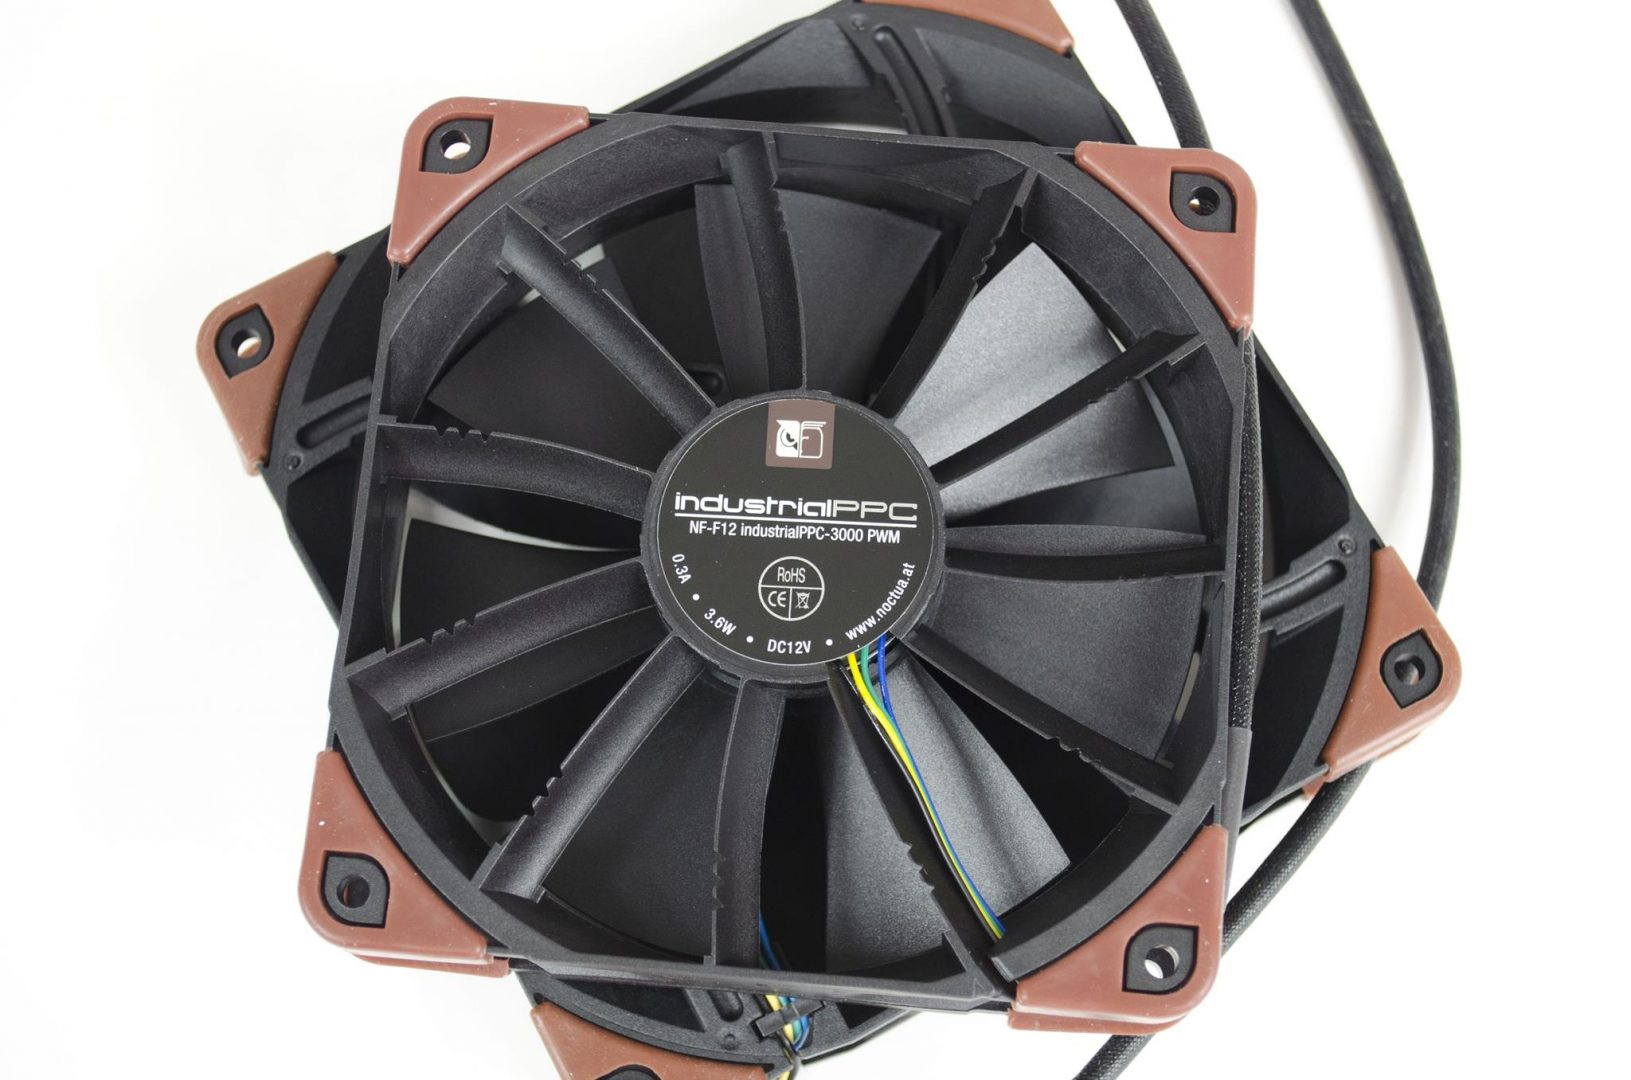 Noctua industrialPPC Fans review_5